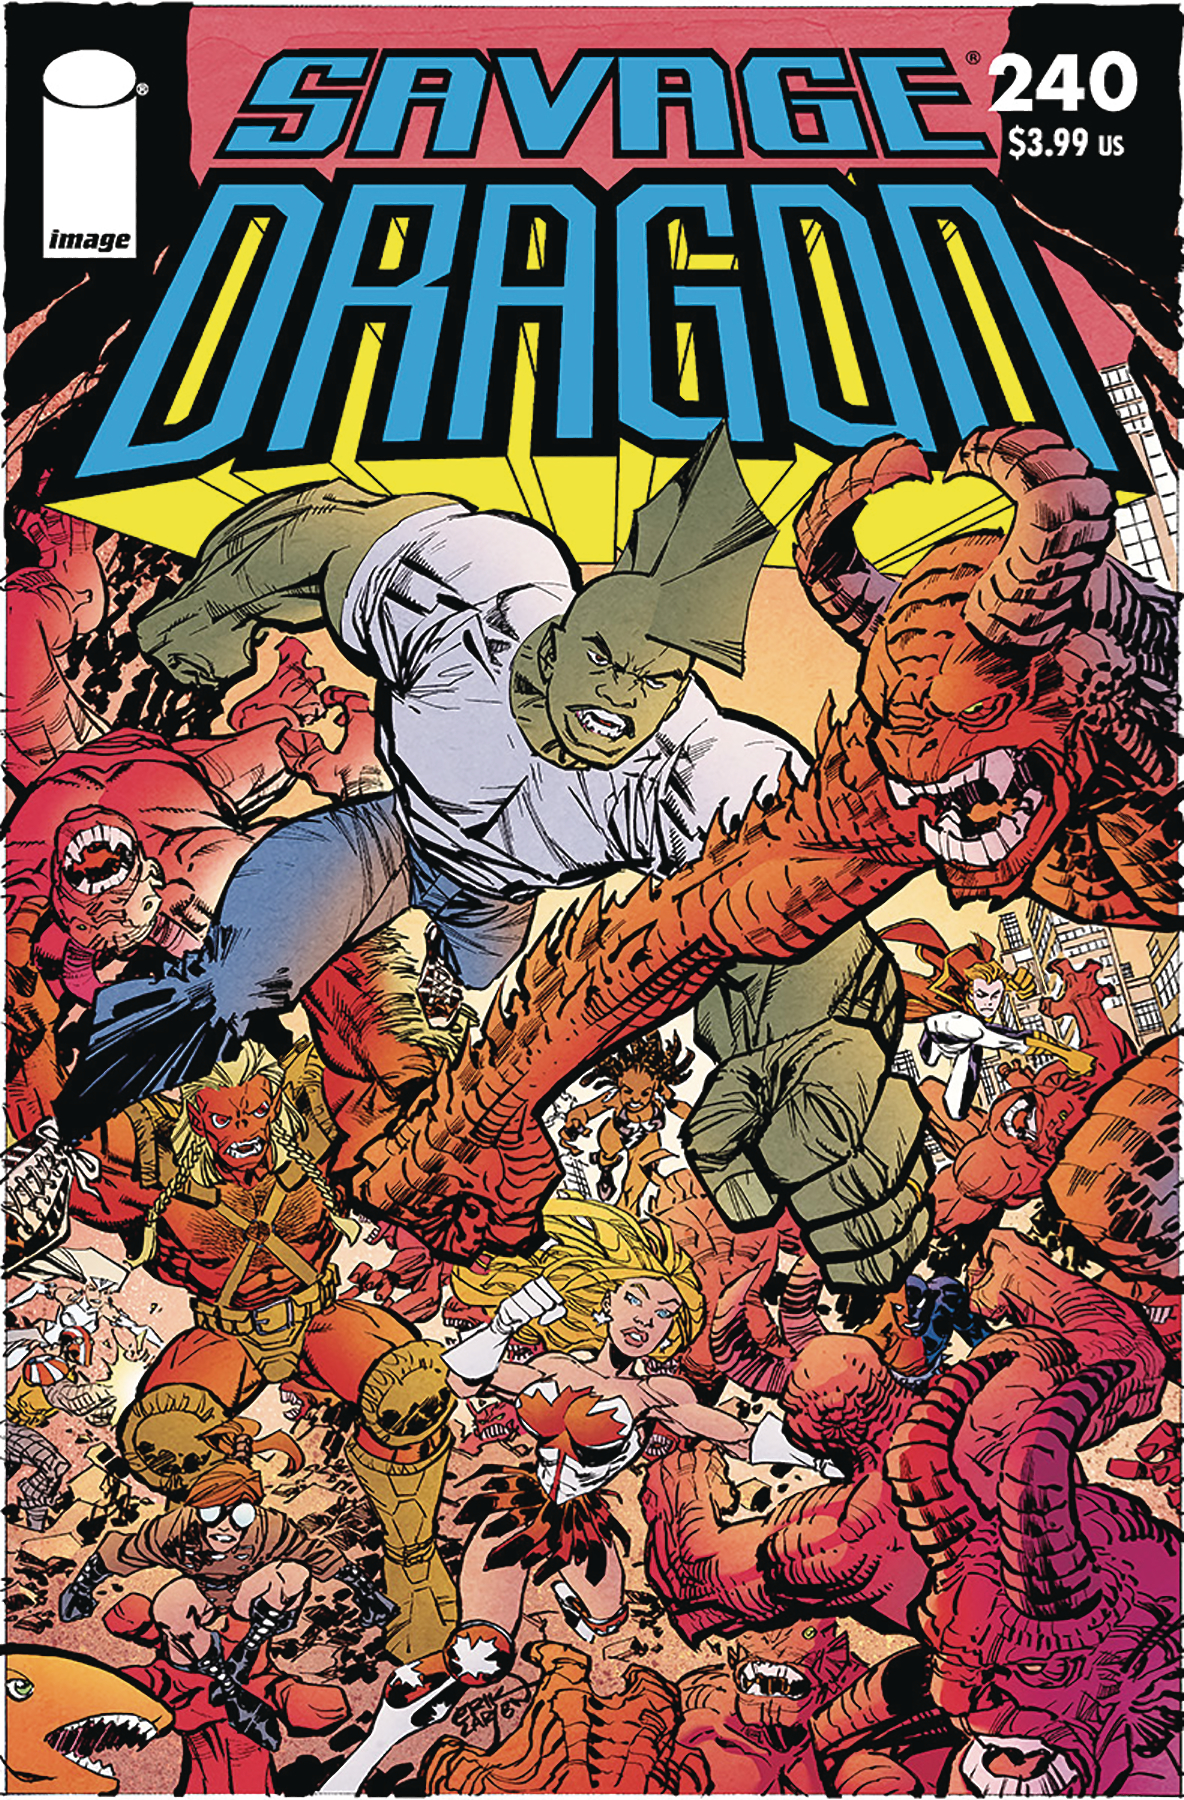 SAVAGE DRAGON #240 (MR)